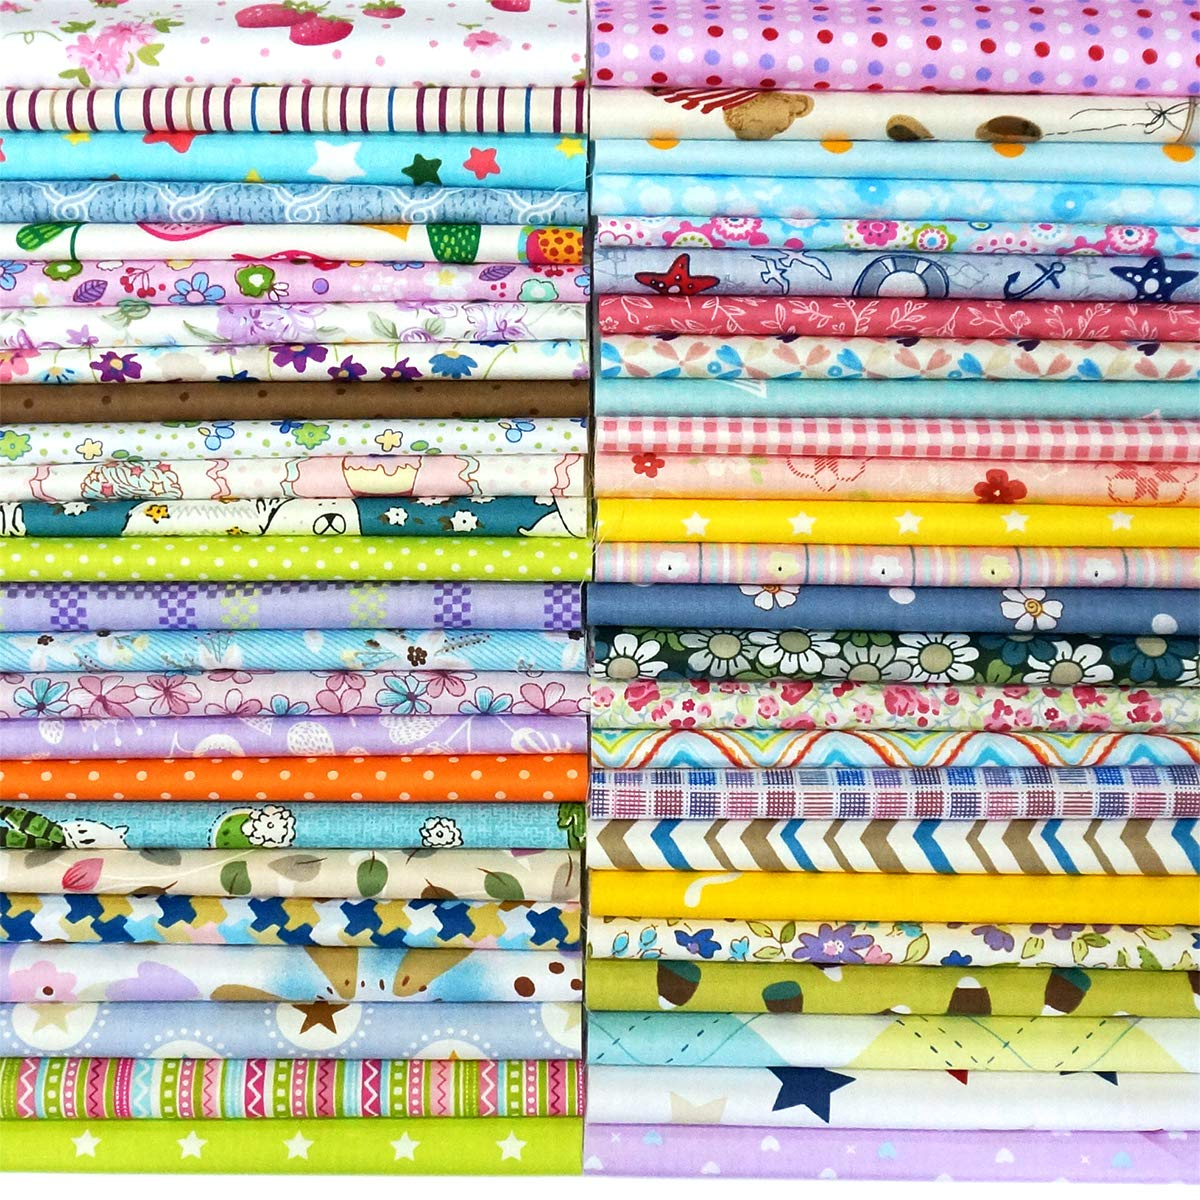 Quilting Fabric, Misscrafts 50pcs 12'' x 12'' (30cm x 30cm) Cotton Craft Fabric Bundle Patchwork Pre-Cut Quilt Squares for DIY Sewing Scrapbooking Quilting Dot Pattern